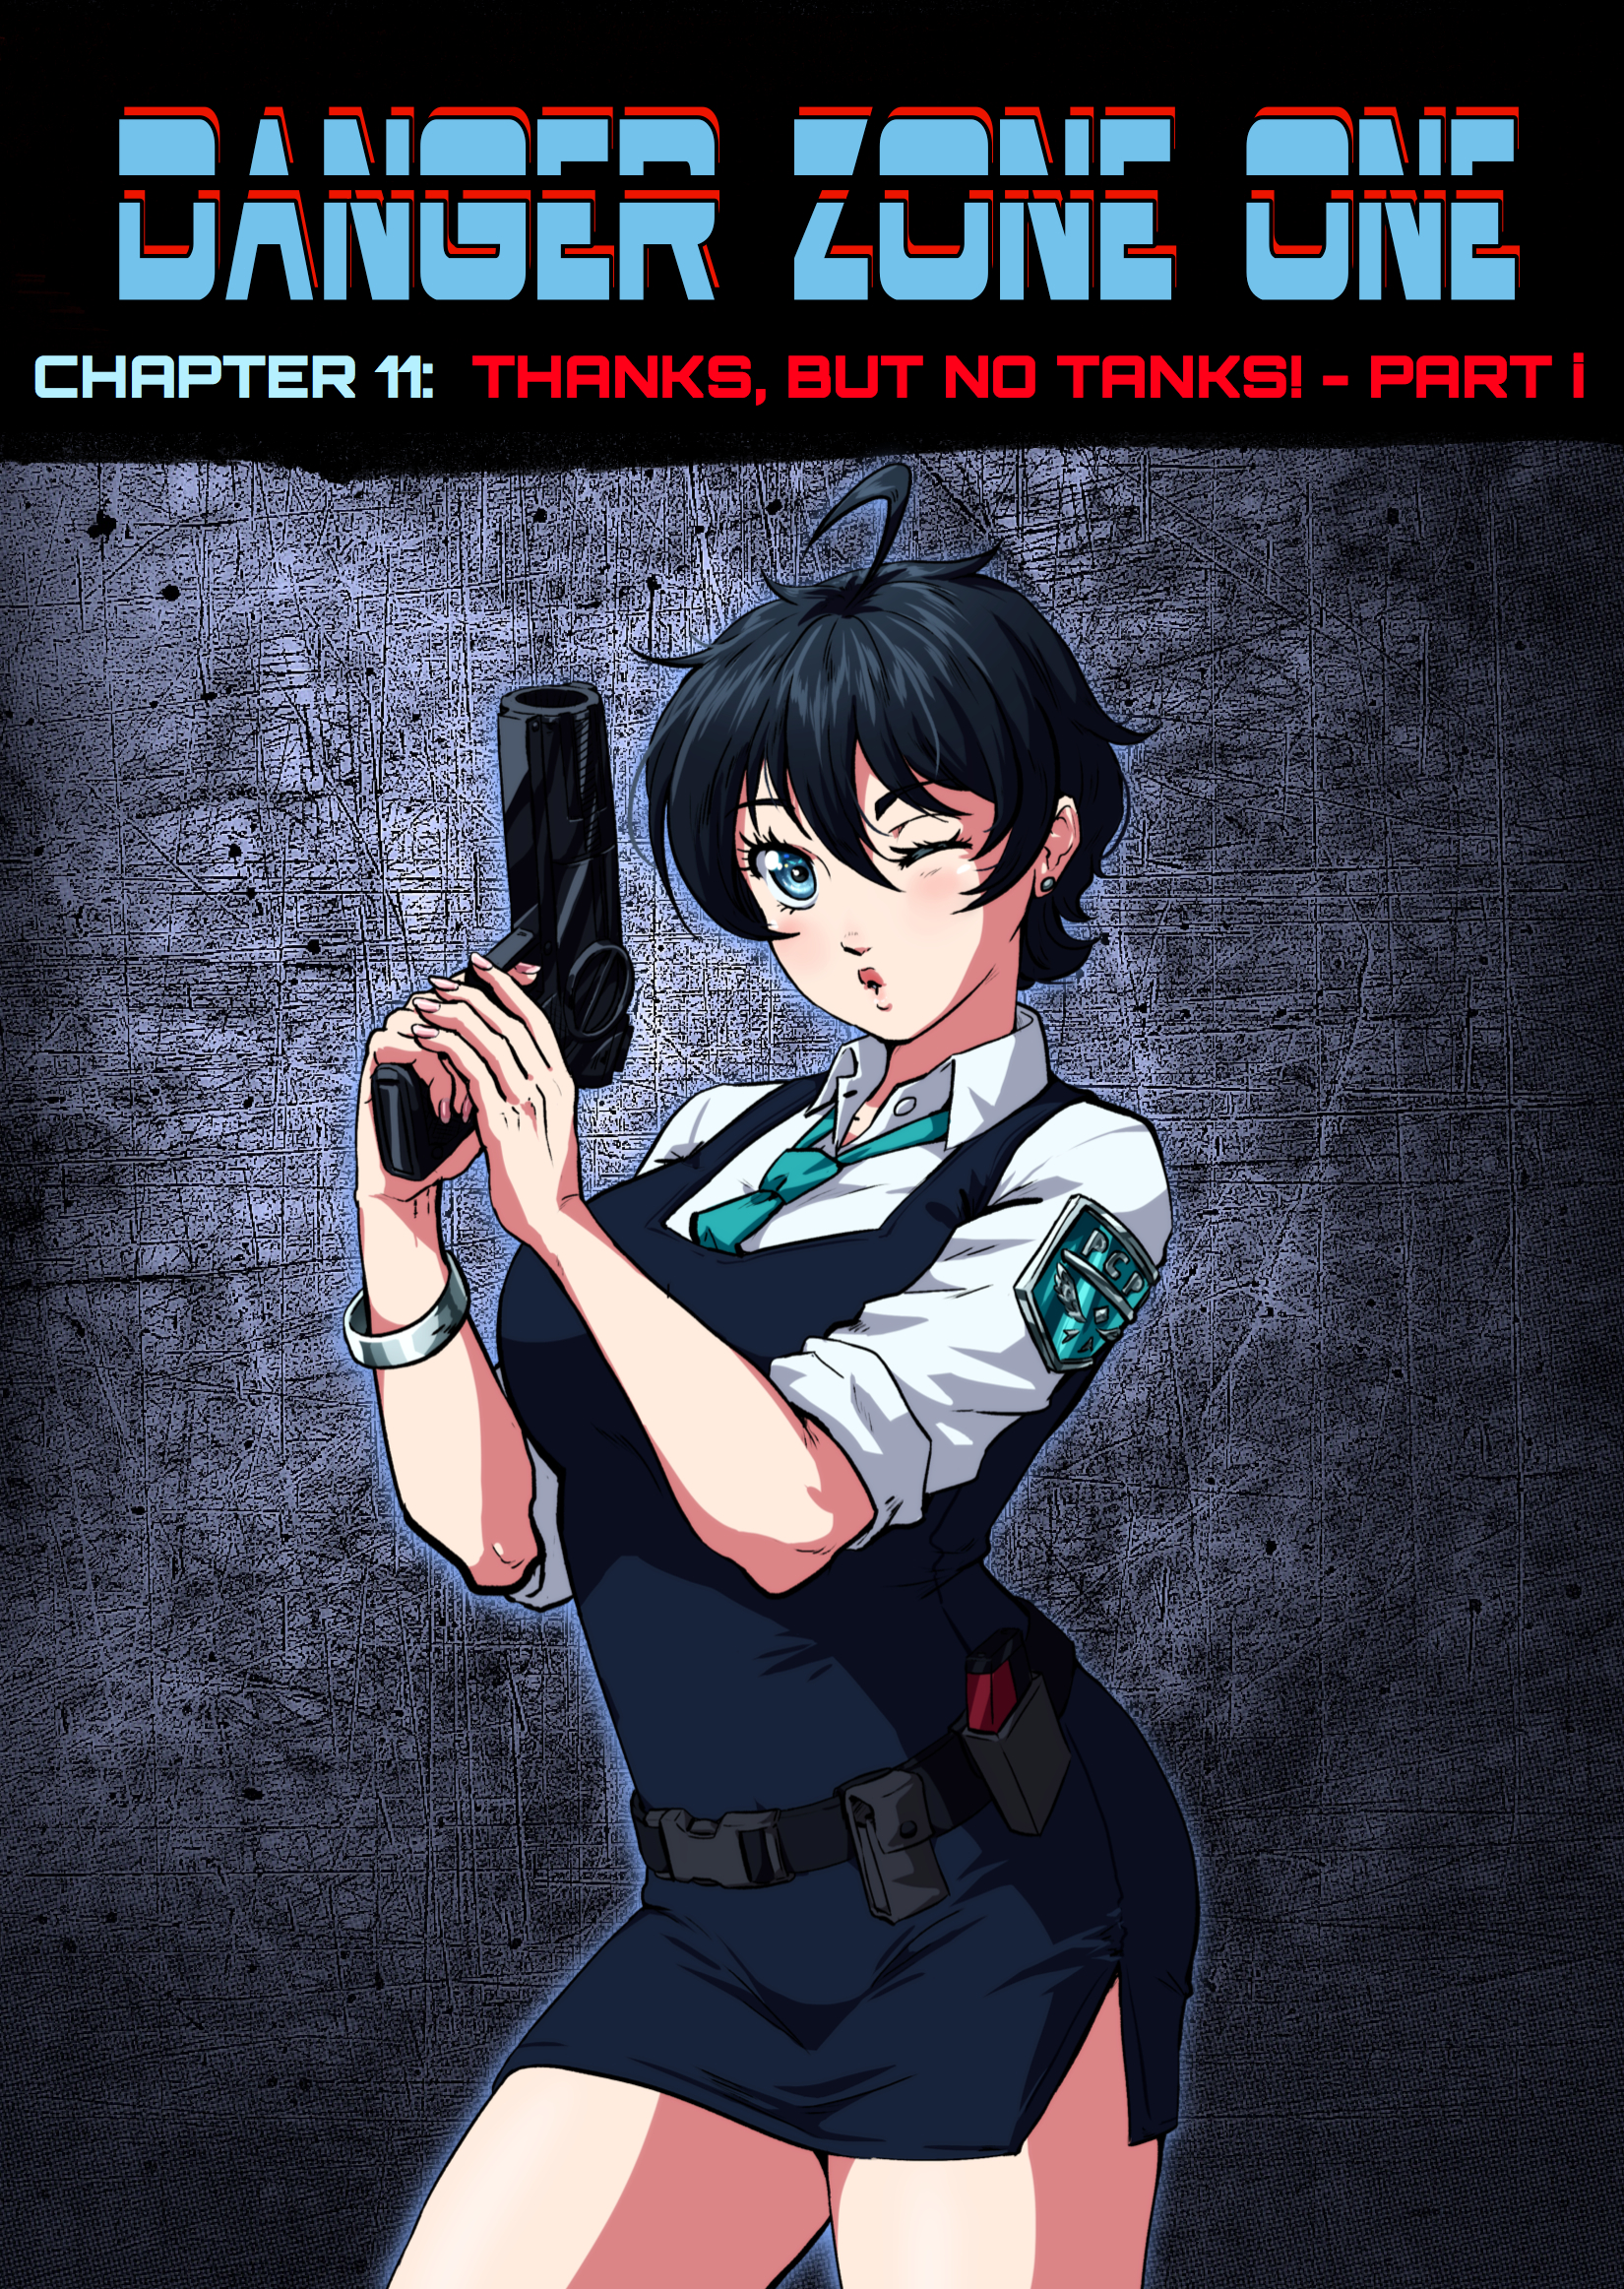 Danger Zone One Chapter 11